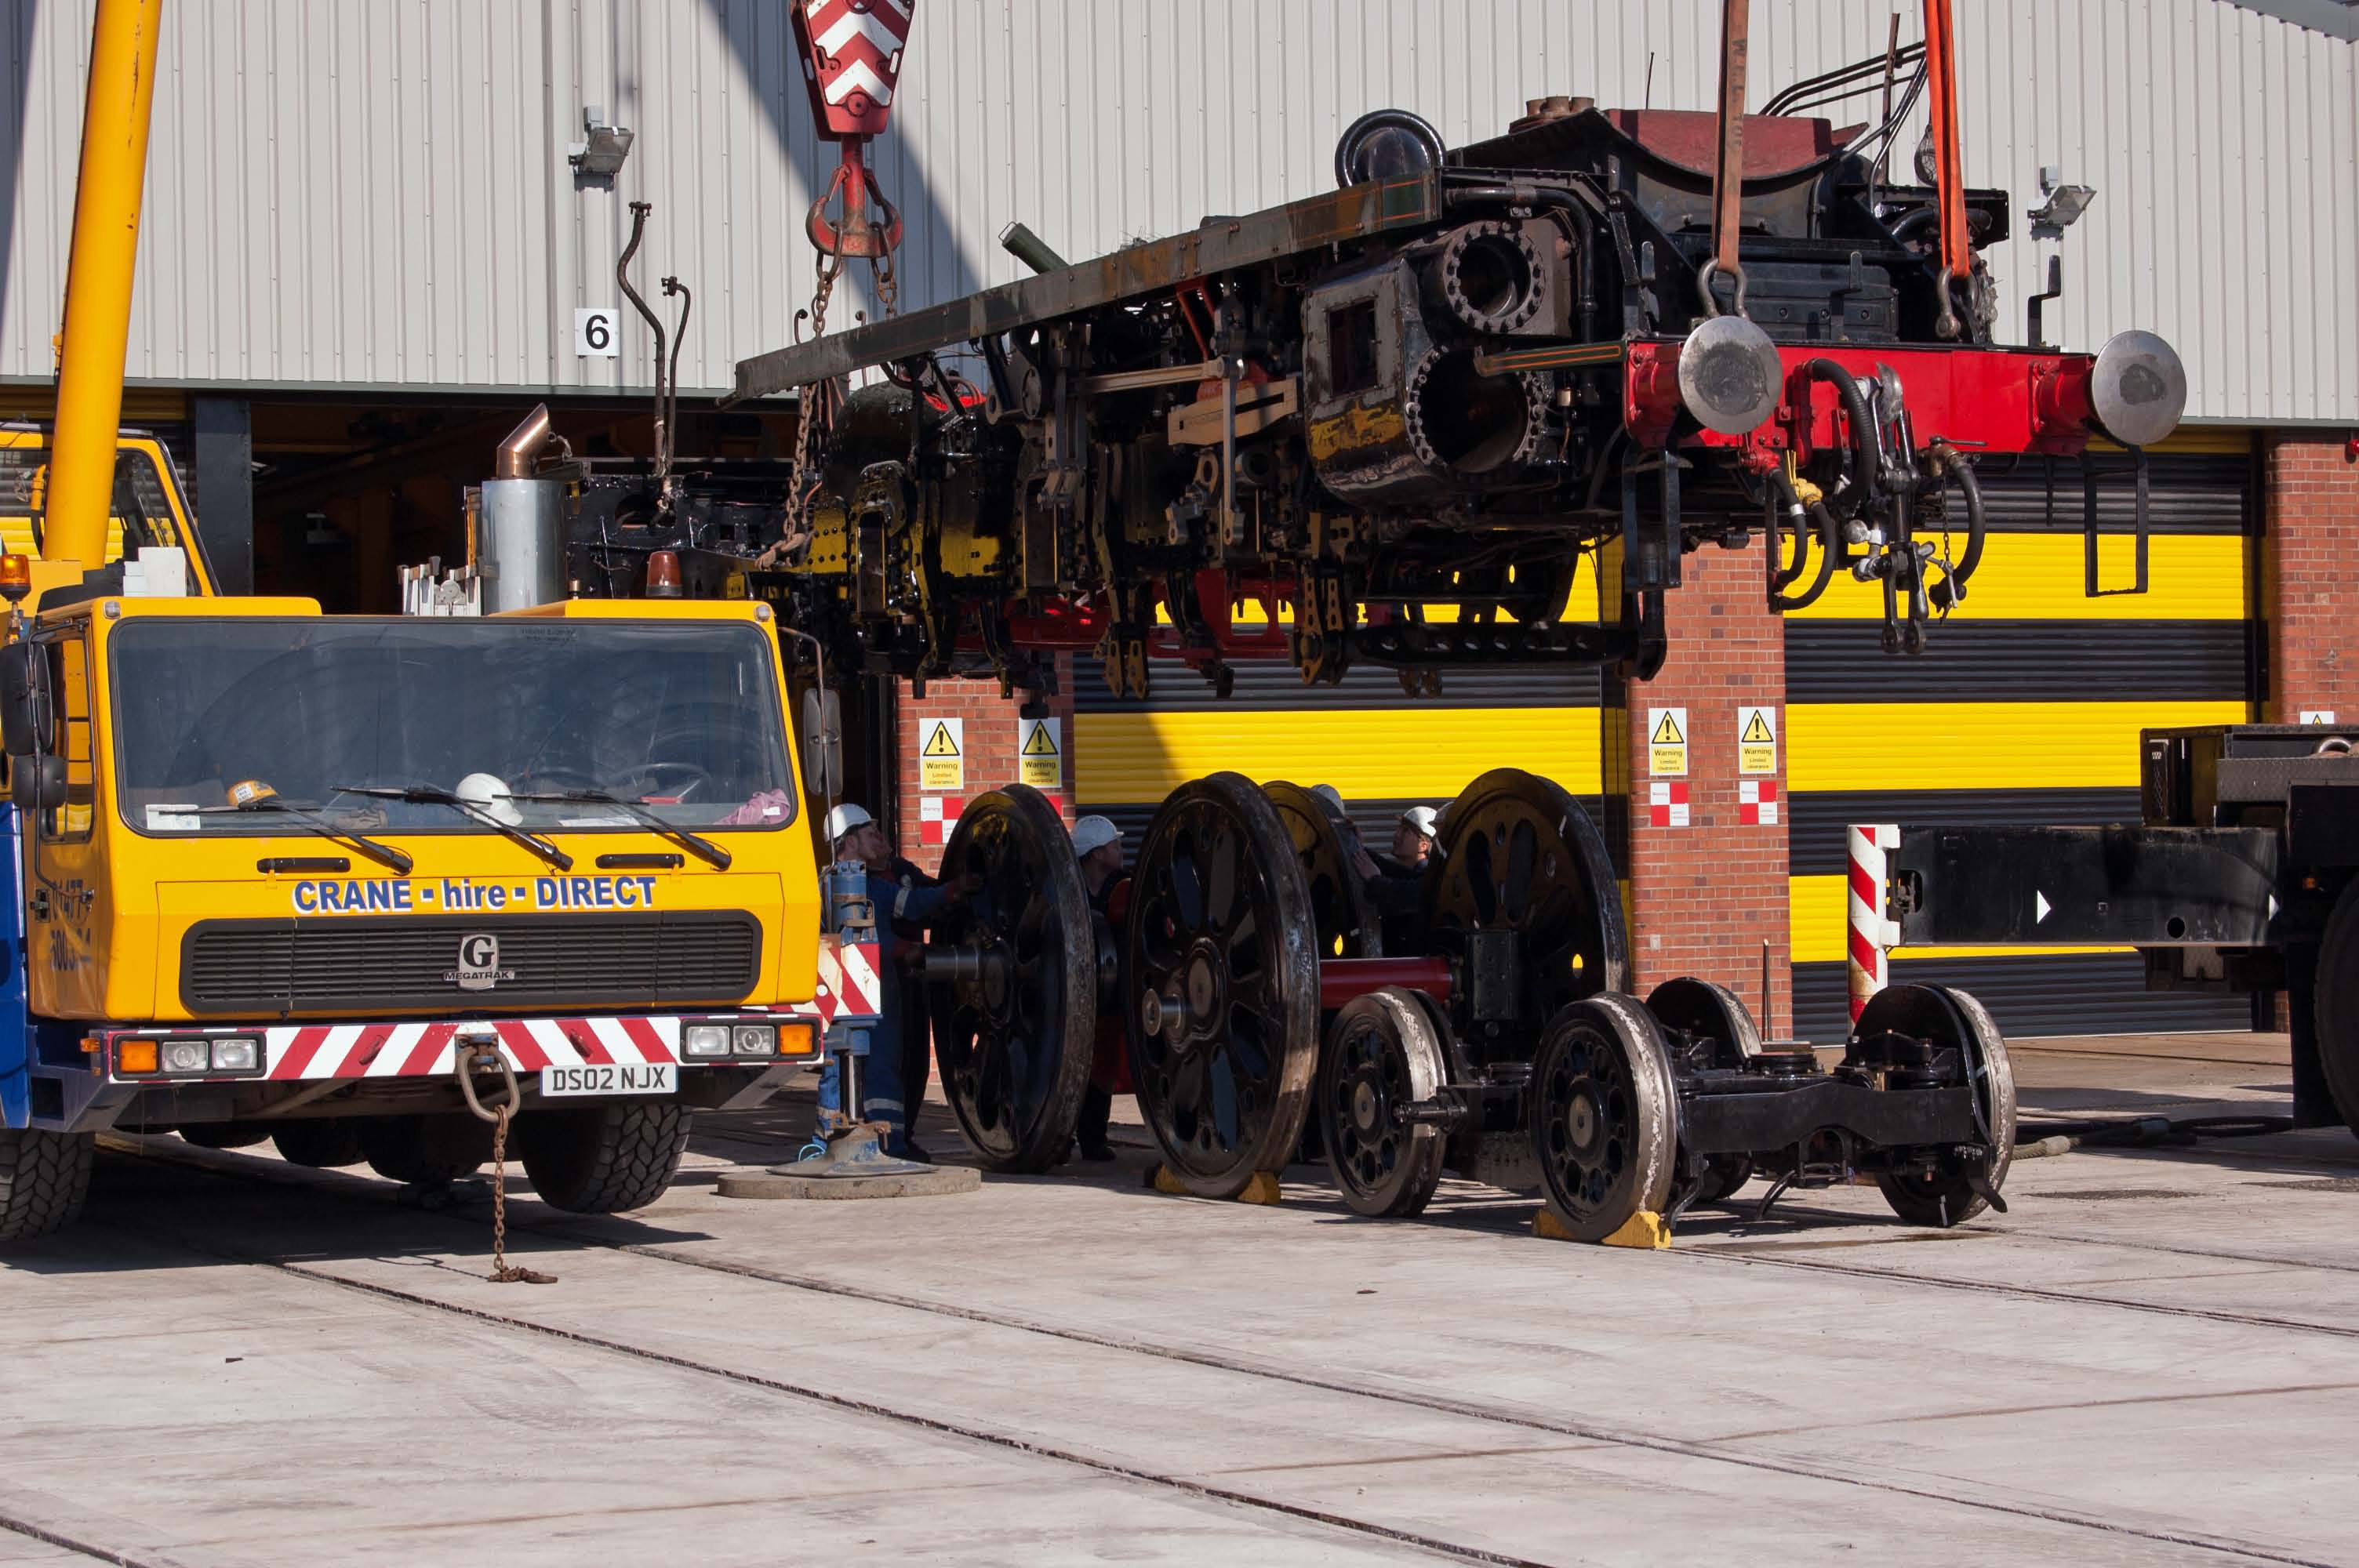 After the accommodation bogies have been removed, the middle driving axle is moved in to position